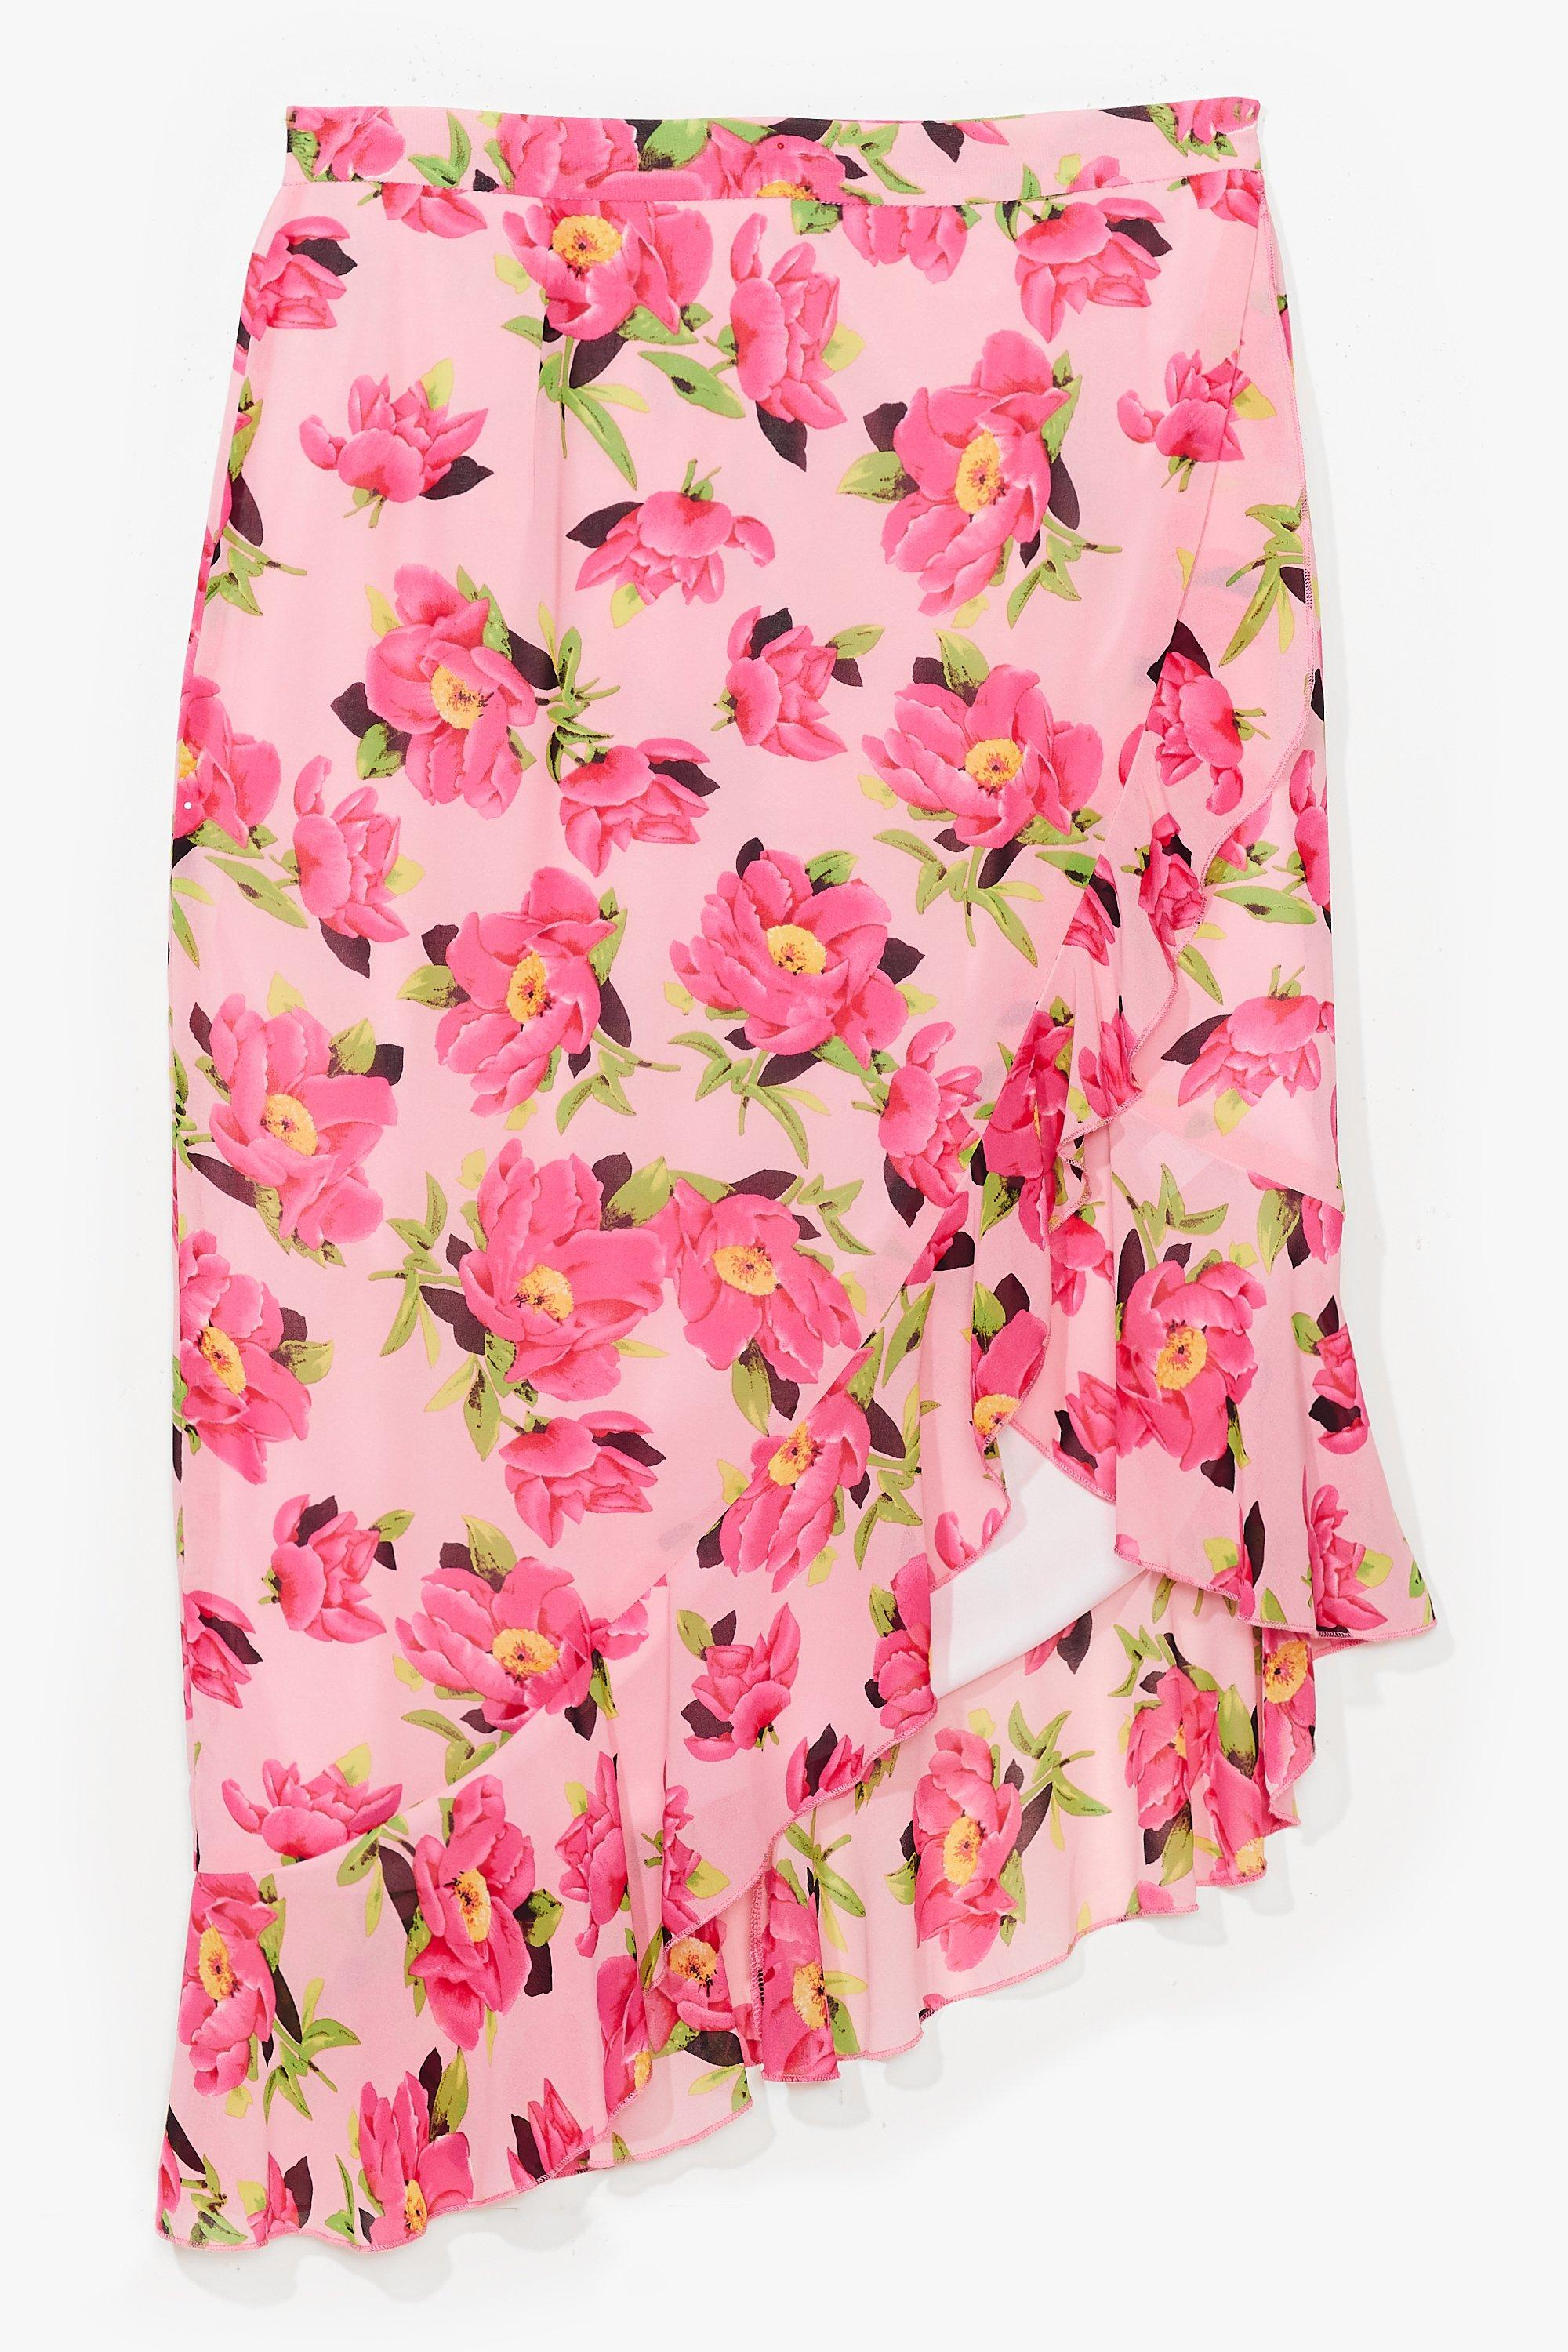 Frill Don't Care Plus Floral Skirt 13